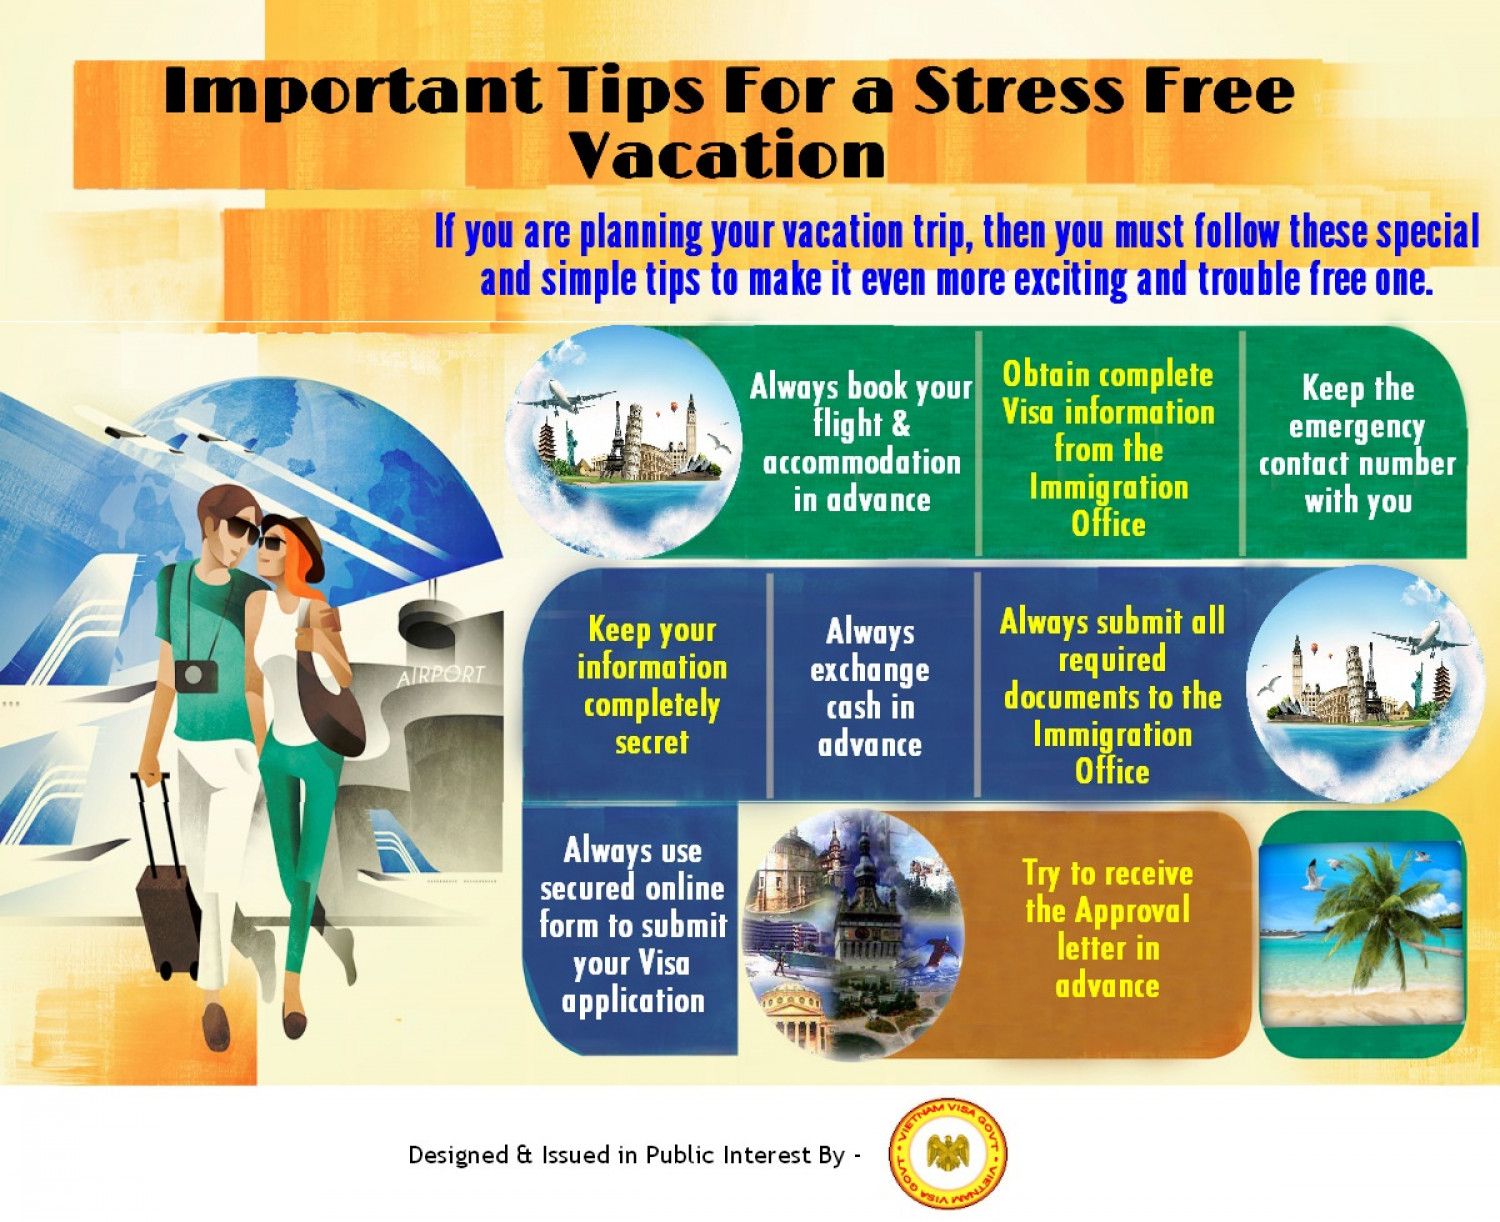 Important Tips For a Stress Free Vacation Infographic